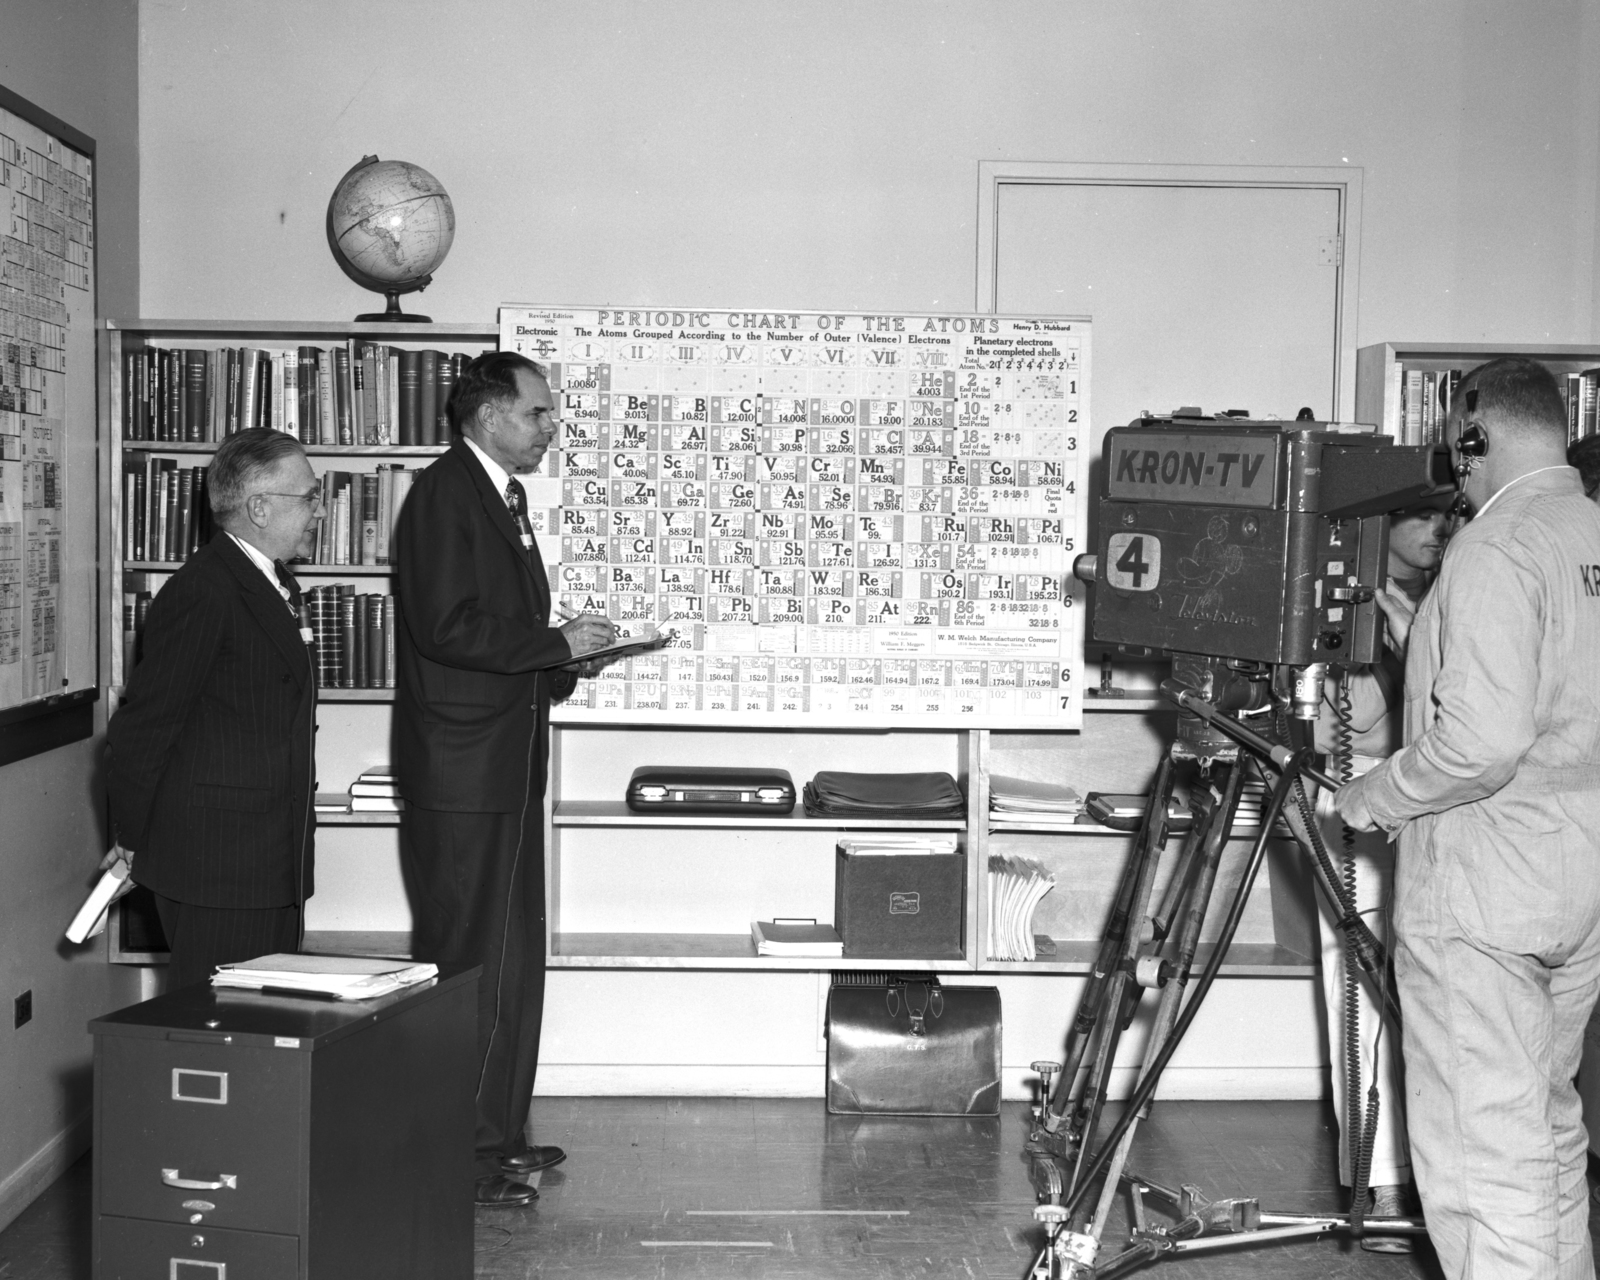 """Emilio Segre and Glenn Seaborg in filming for the TV show, """"Wide, Wide World"""". Produced 10/08/1957. Morgue 1958-25 (P-19) [Photographer: Donald Cooksey]"""